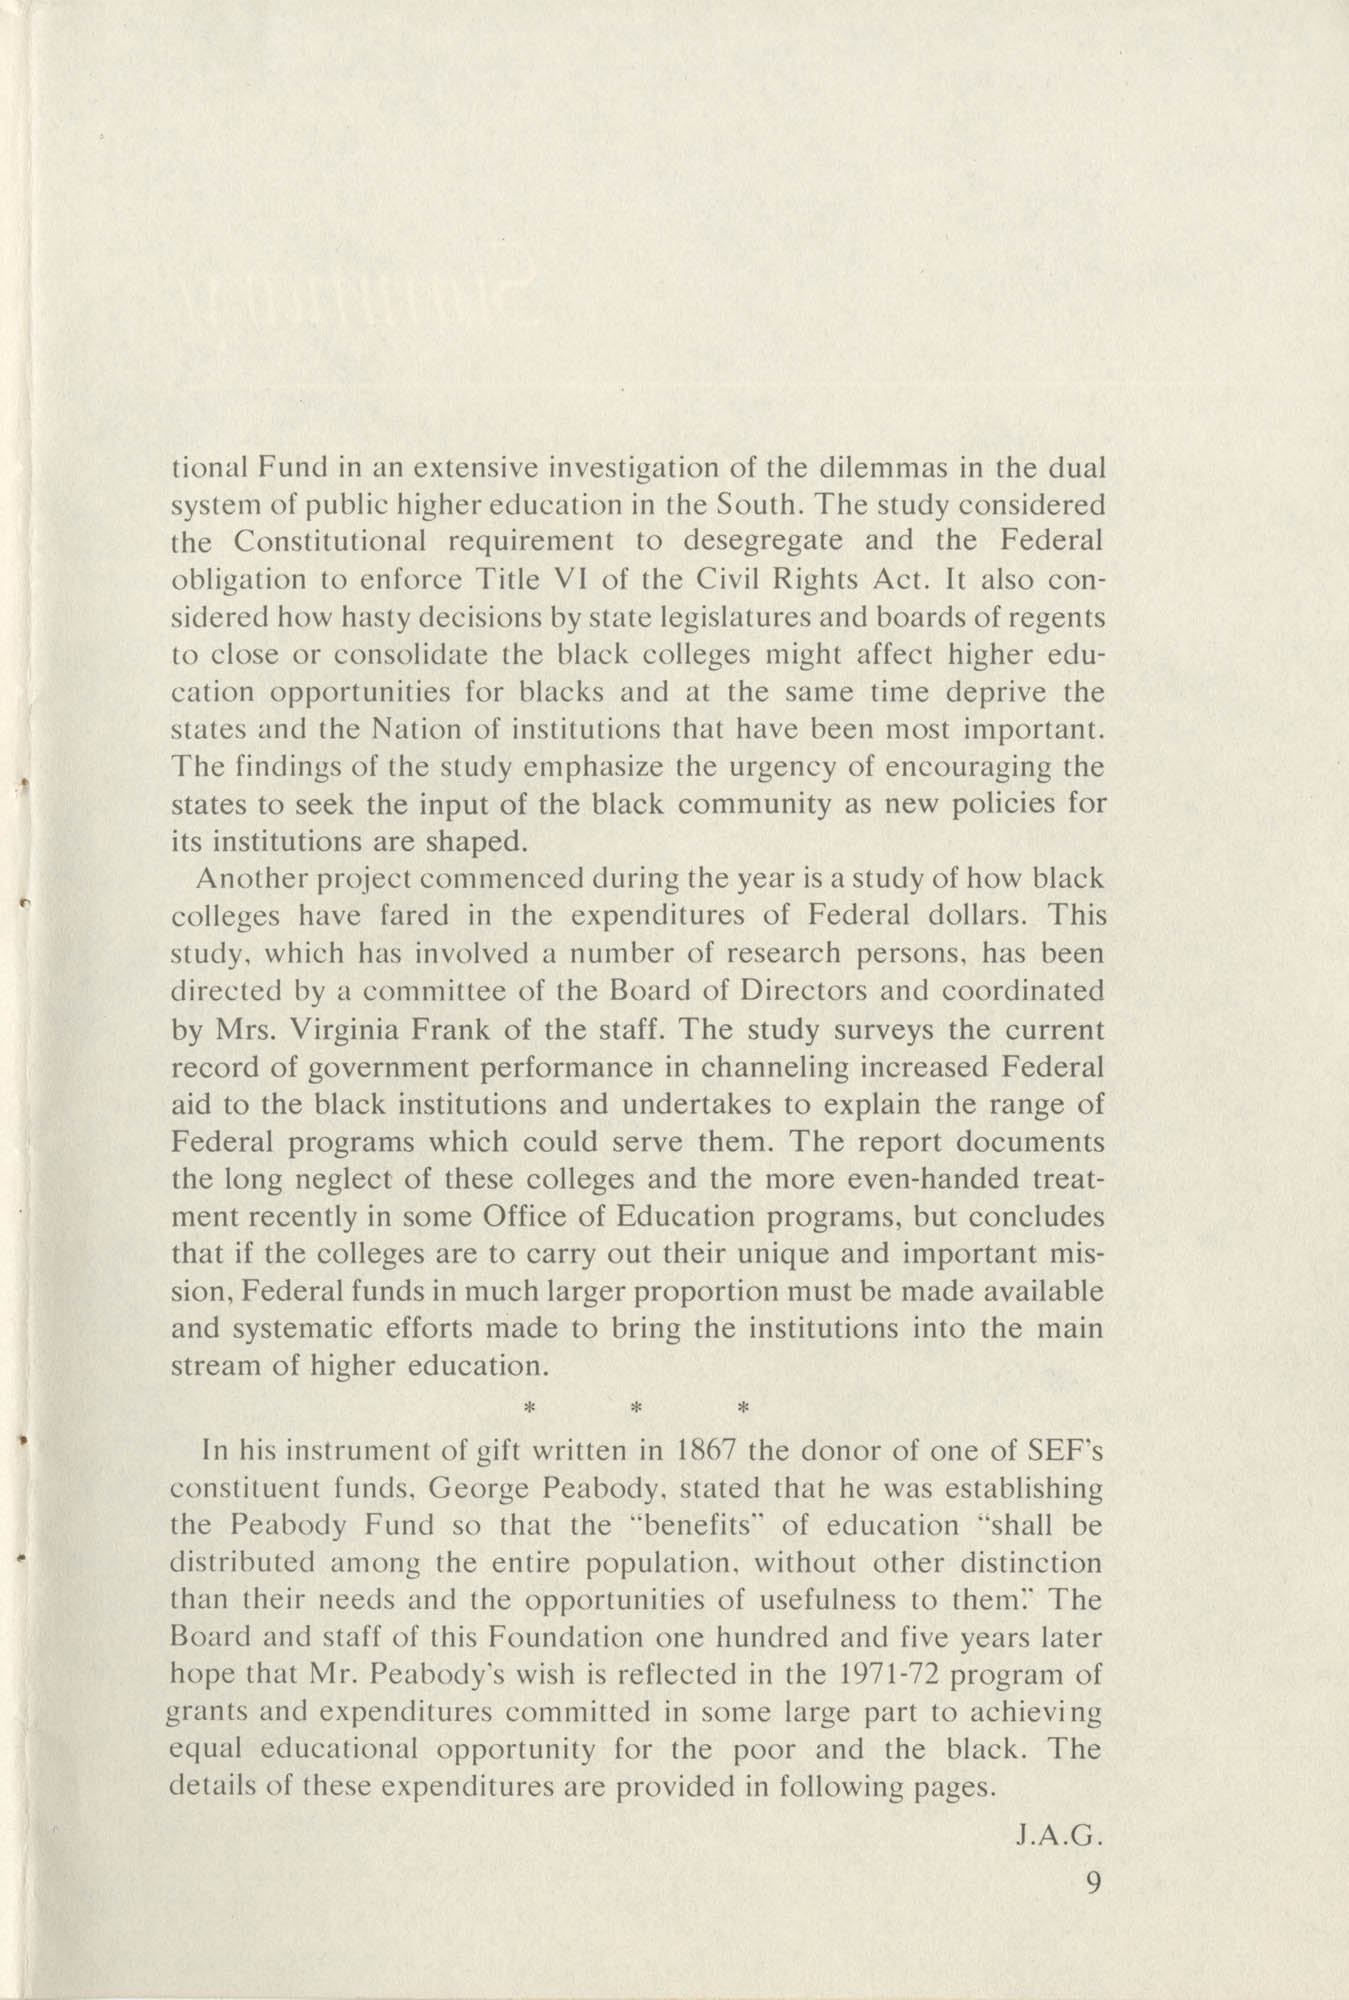 Southern Education Foundation, Annual Report 1971-1972, Page 9